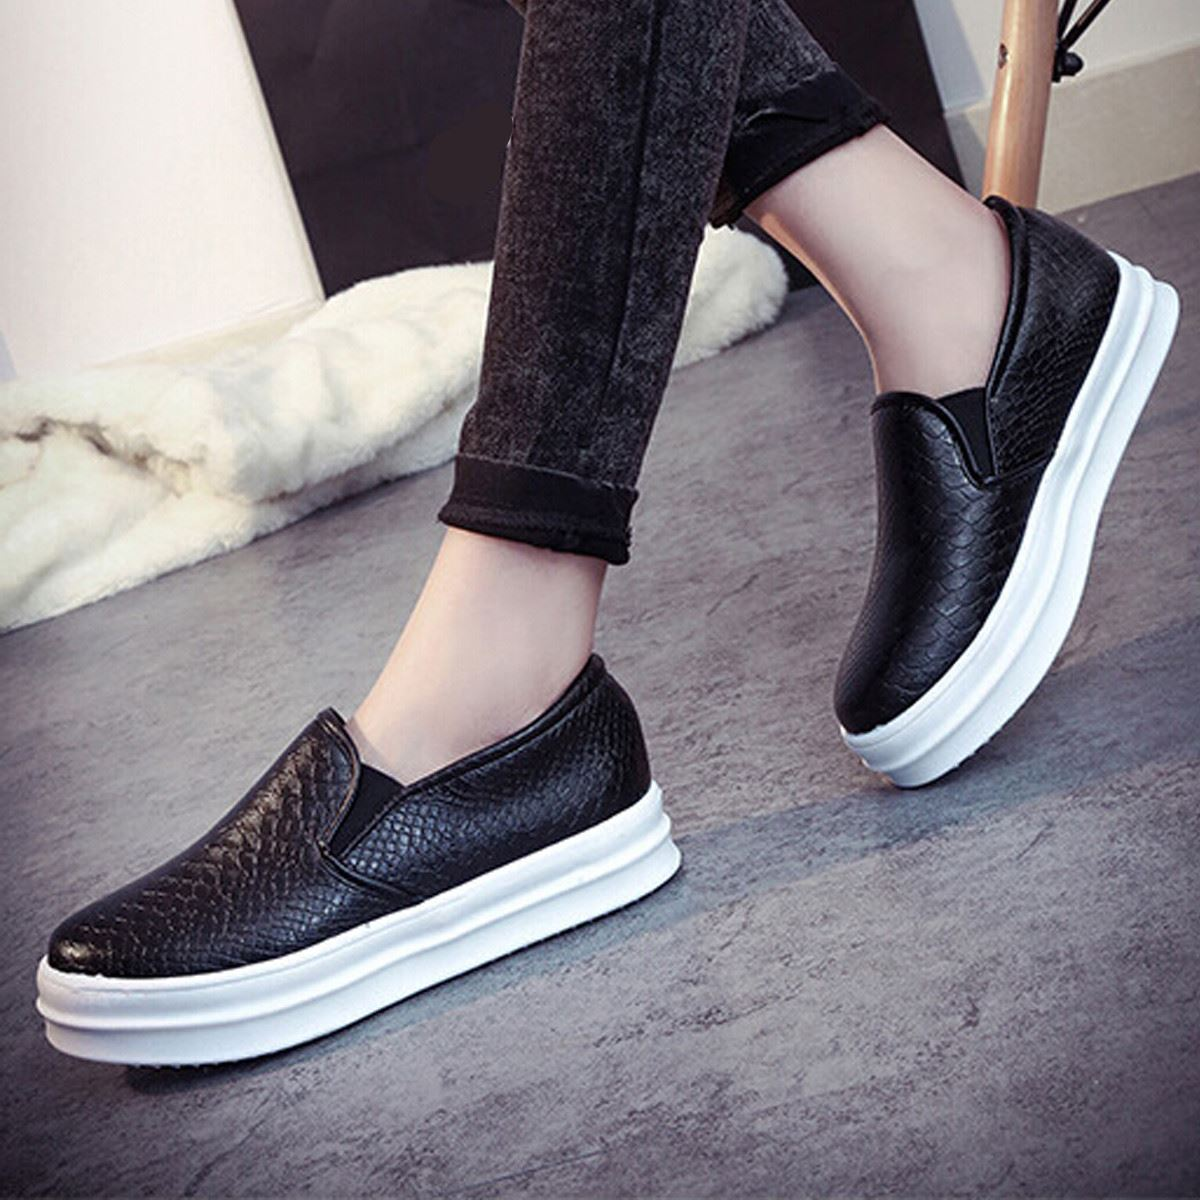 f8dfdc43a0 Wholesale Summer Korean Style Trendy Women Shoes Lady Slip On Round Toe  Solid Colors Soft Leather Sizes 35 39 Flat Shoe-in Women s Flats from Shoes  on ...